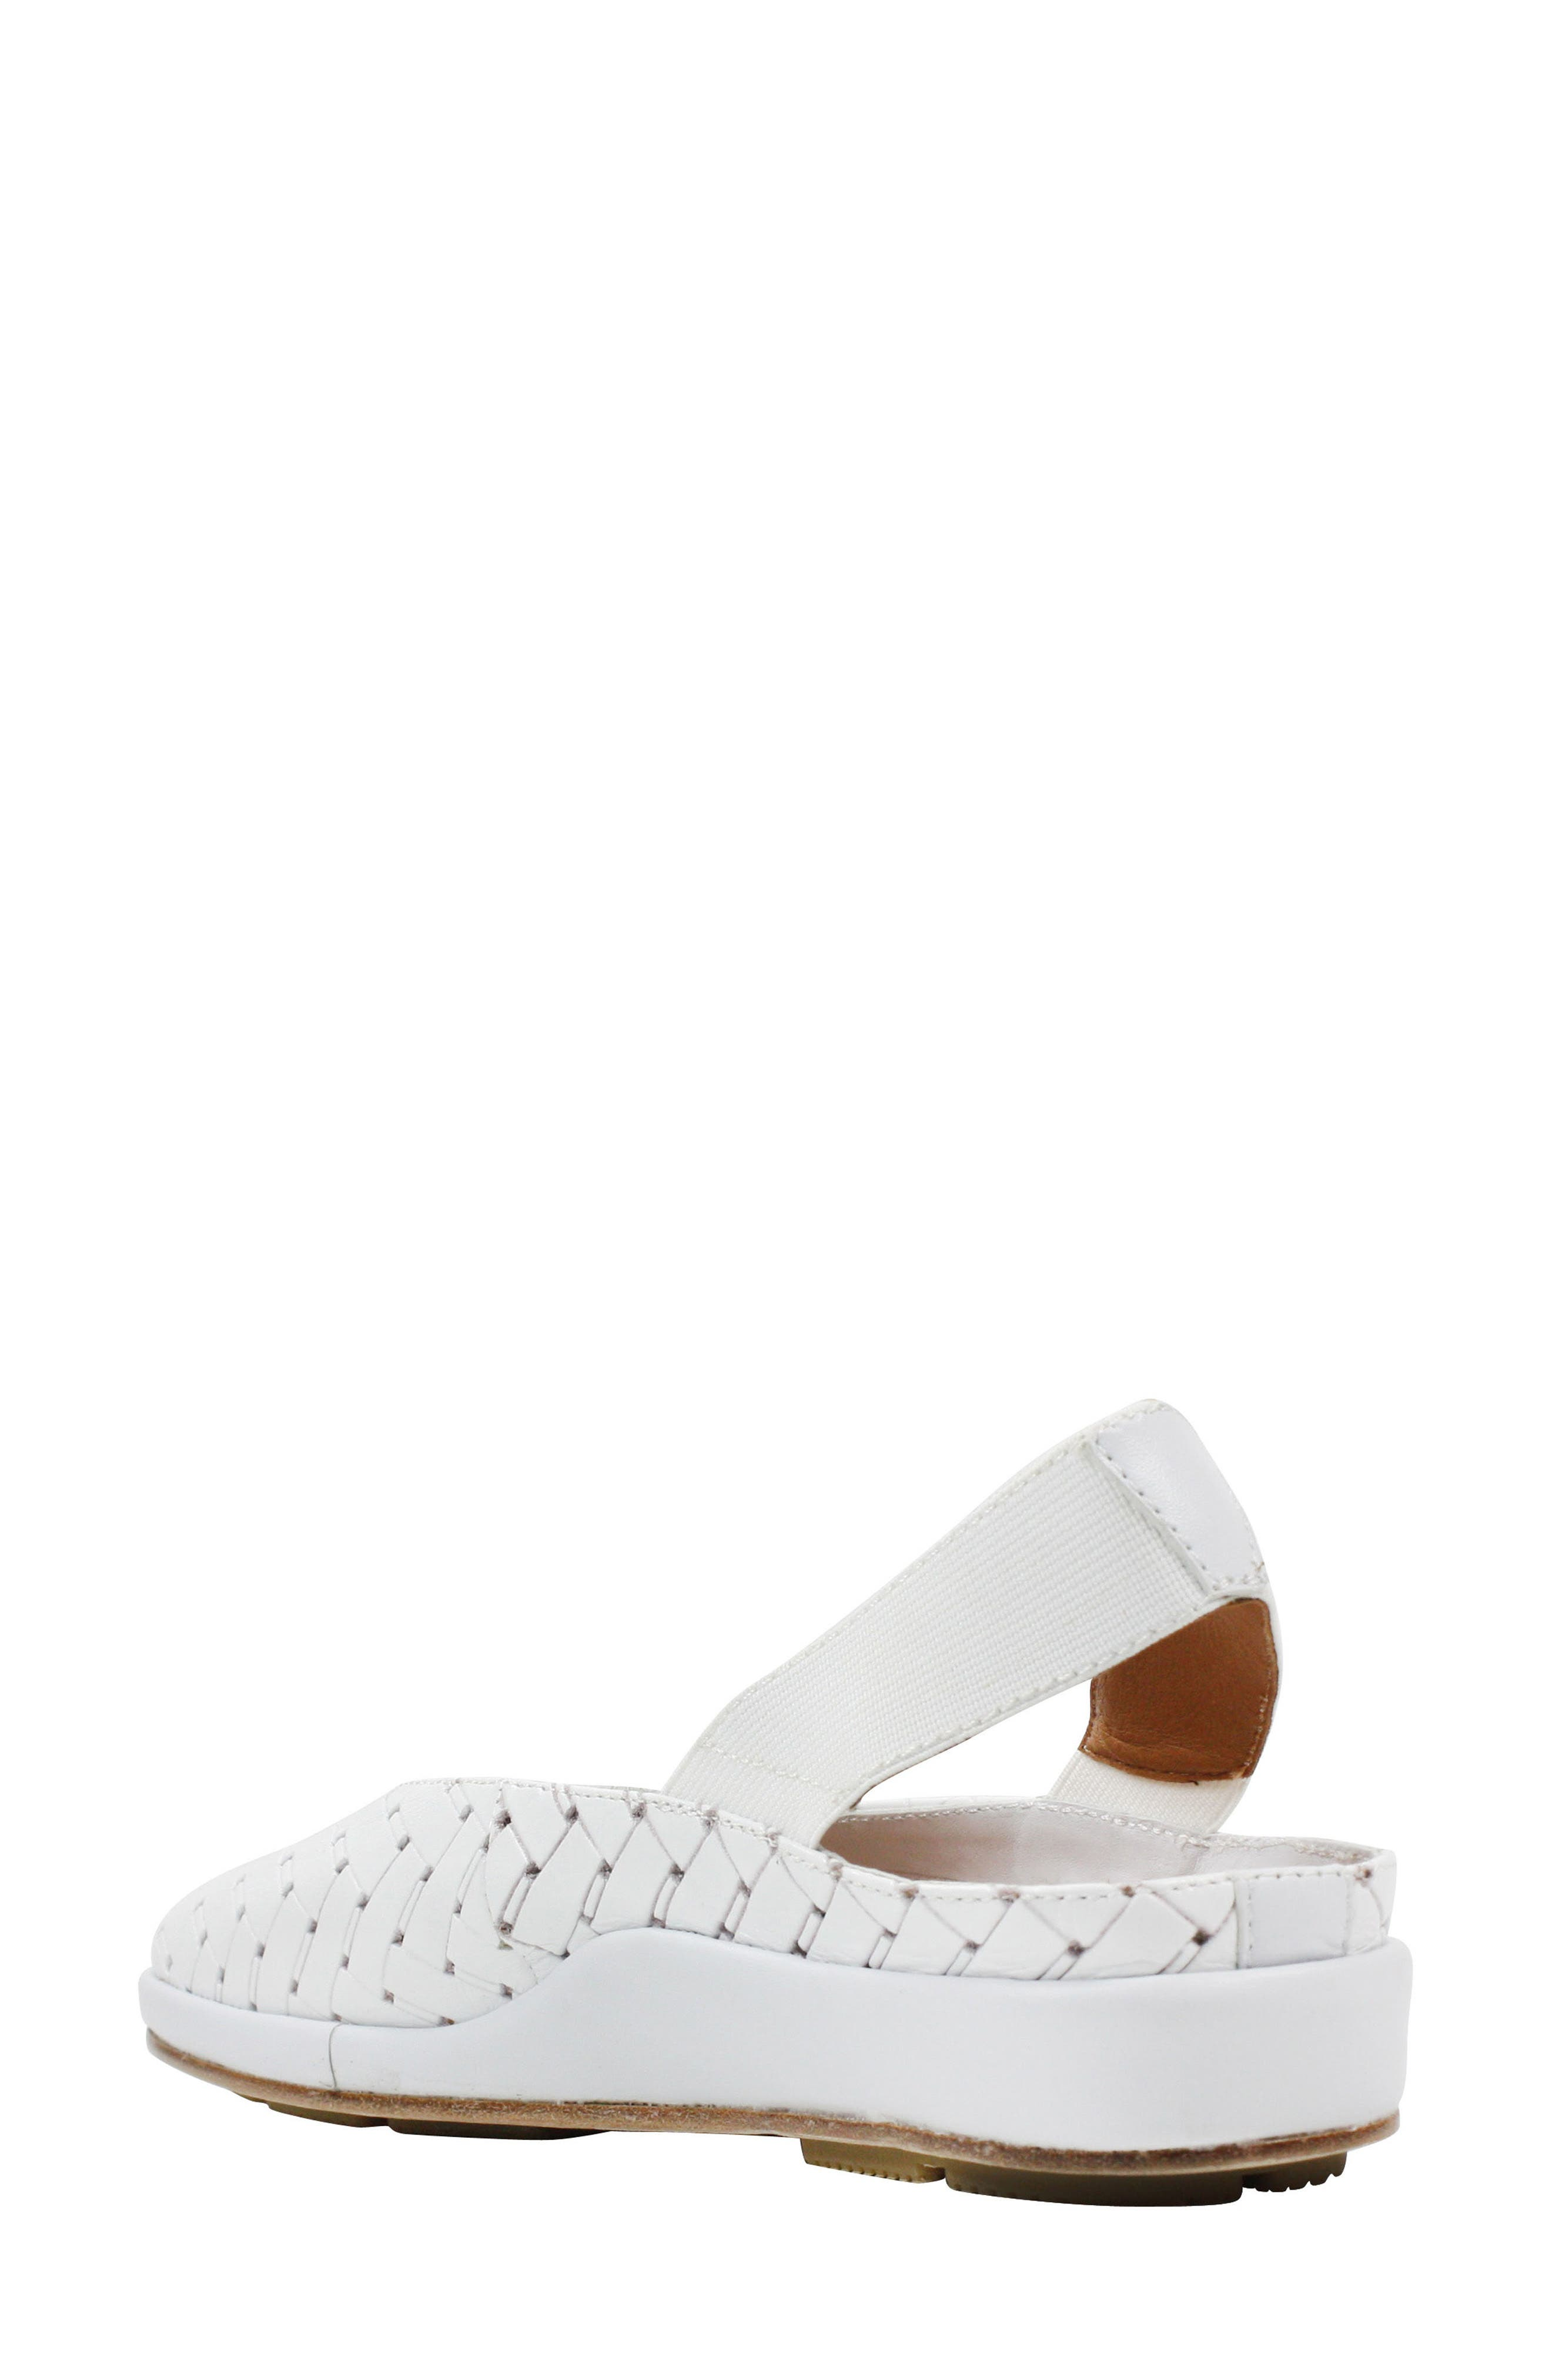 'Cypris' Slingback Wedge,                             Alternate thumbnail 2, color,                             White Leather